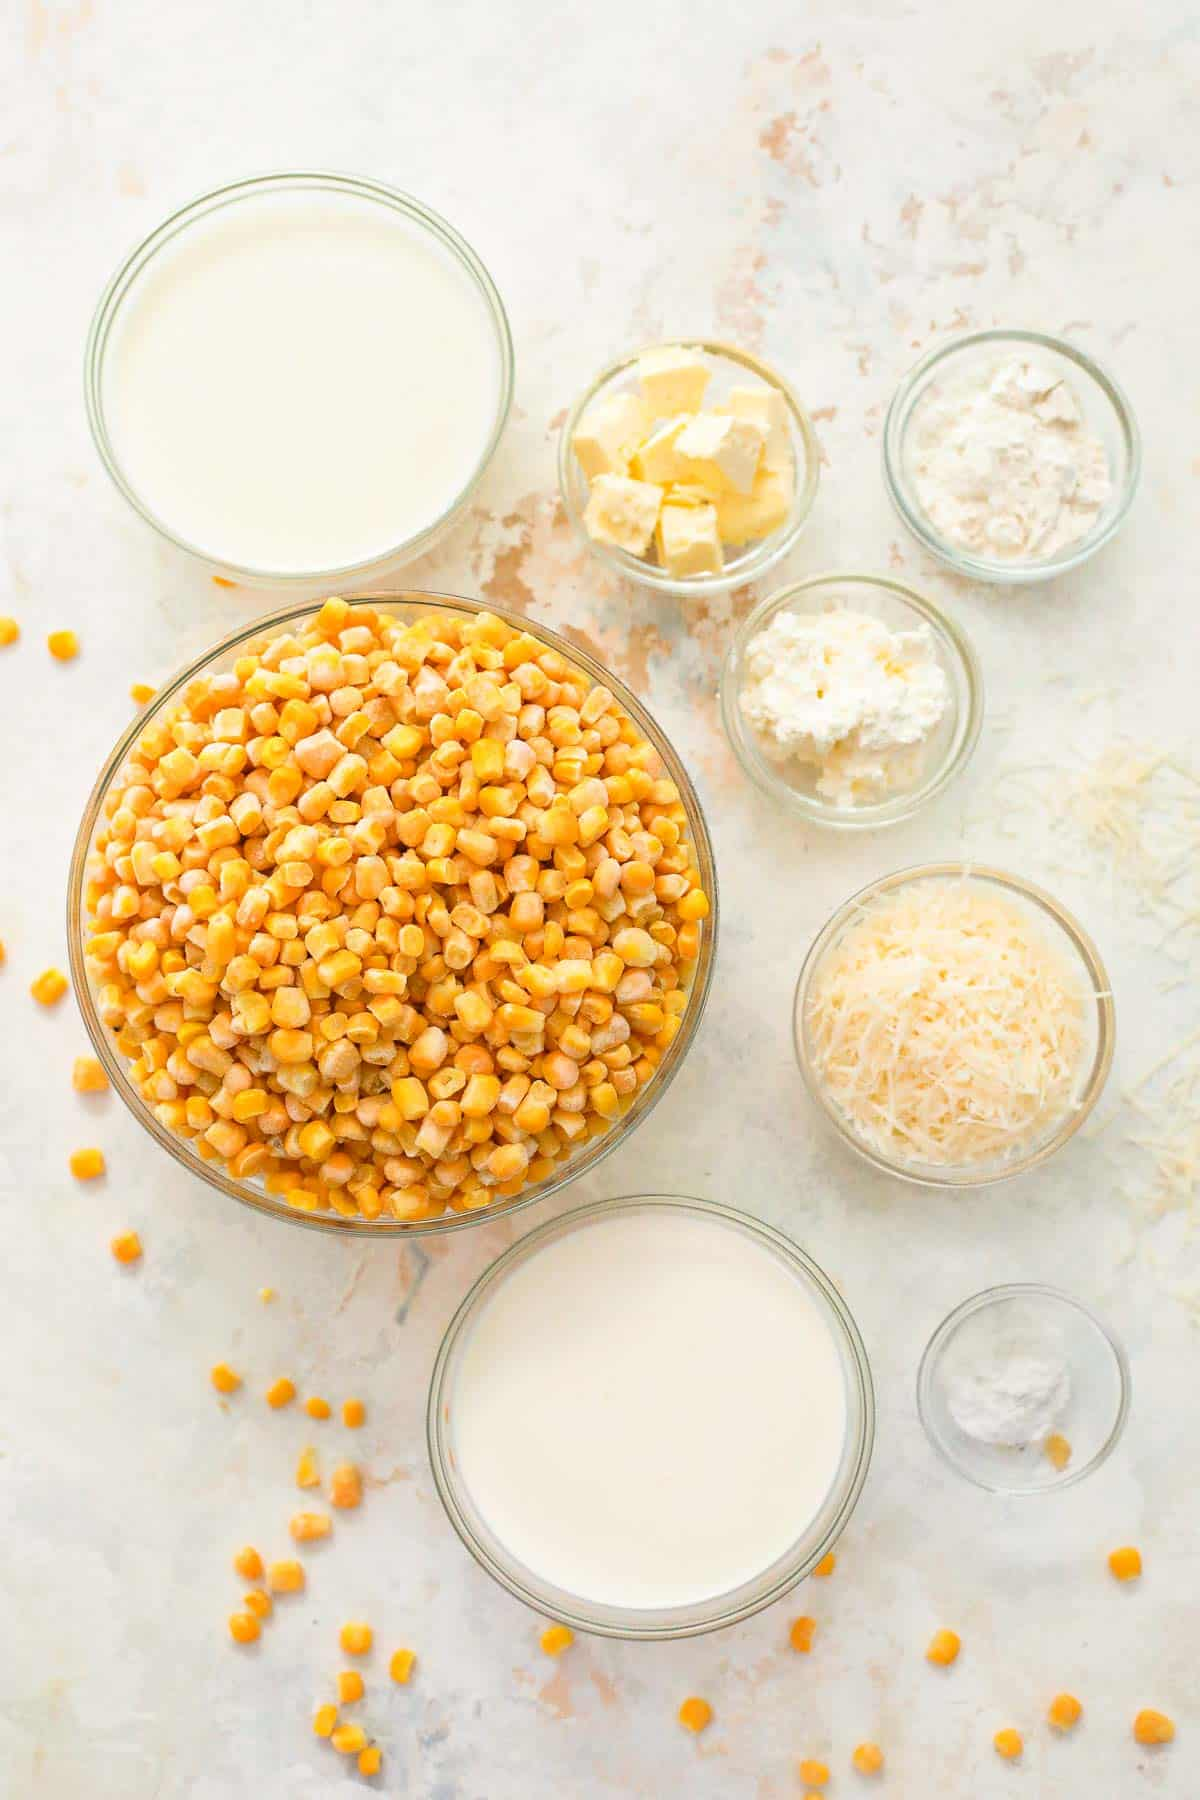 ingredients to make creamed corn in glass bowls